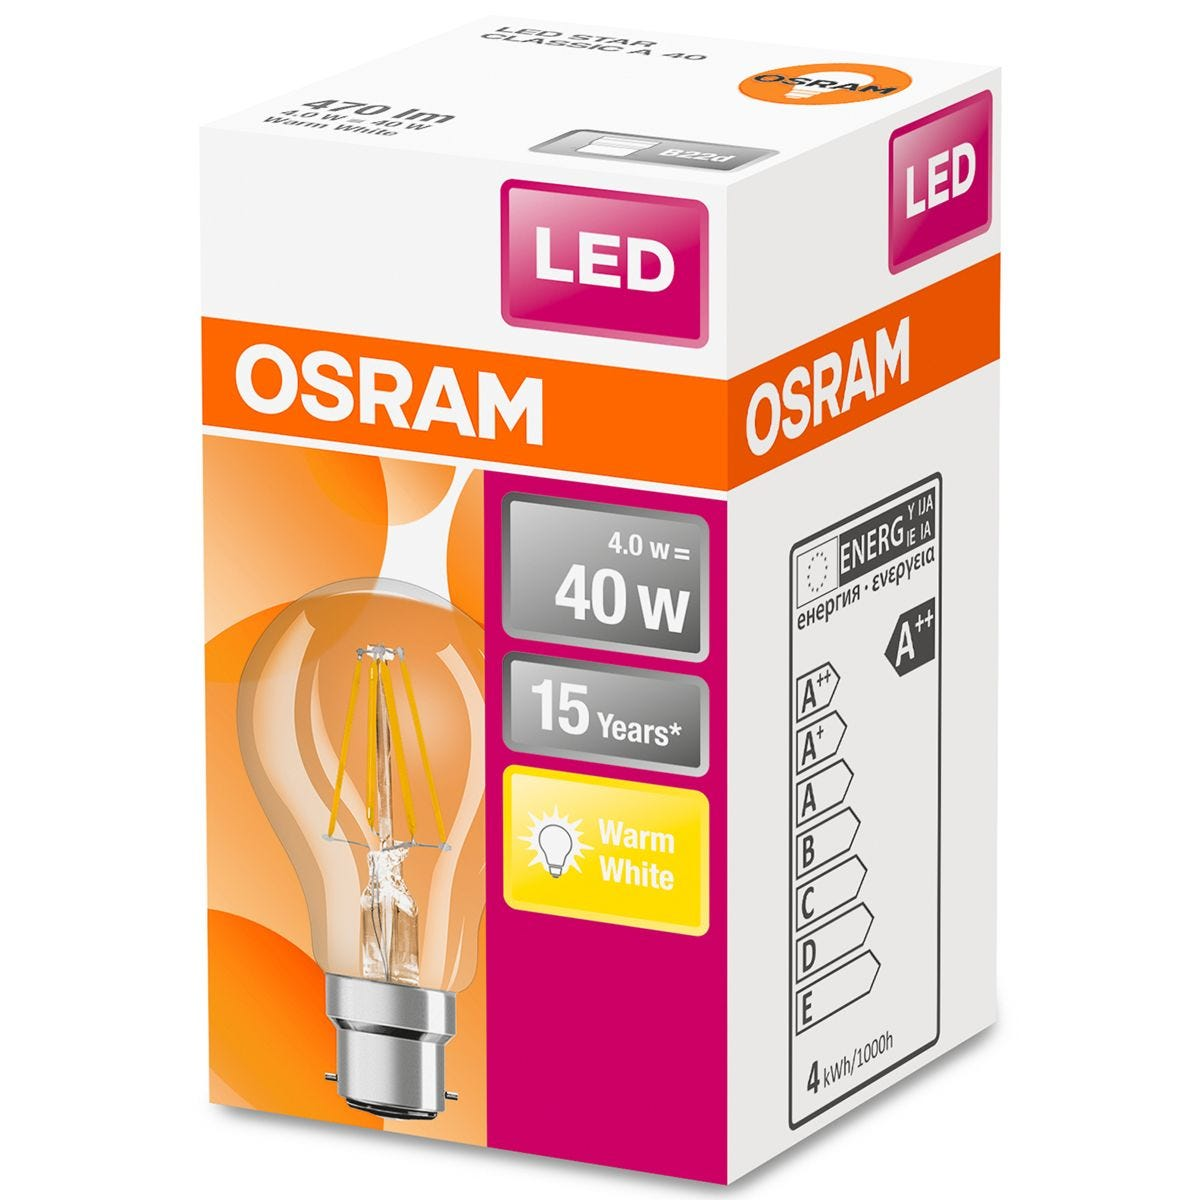 Osram Classic A 40W LED Filament Clear BC Bulb - Warm White